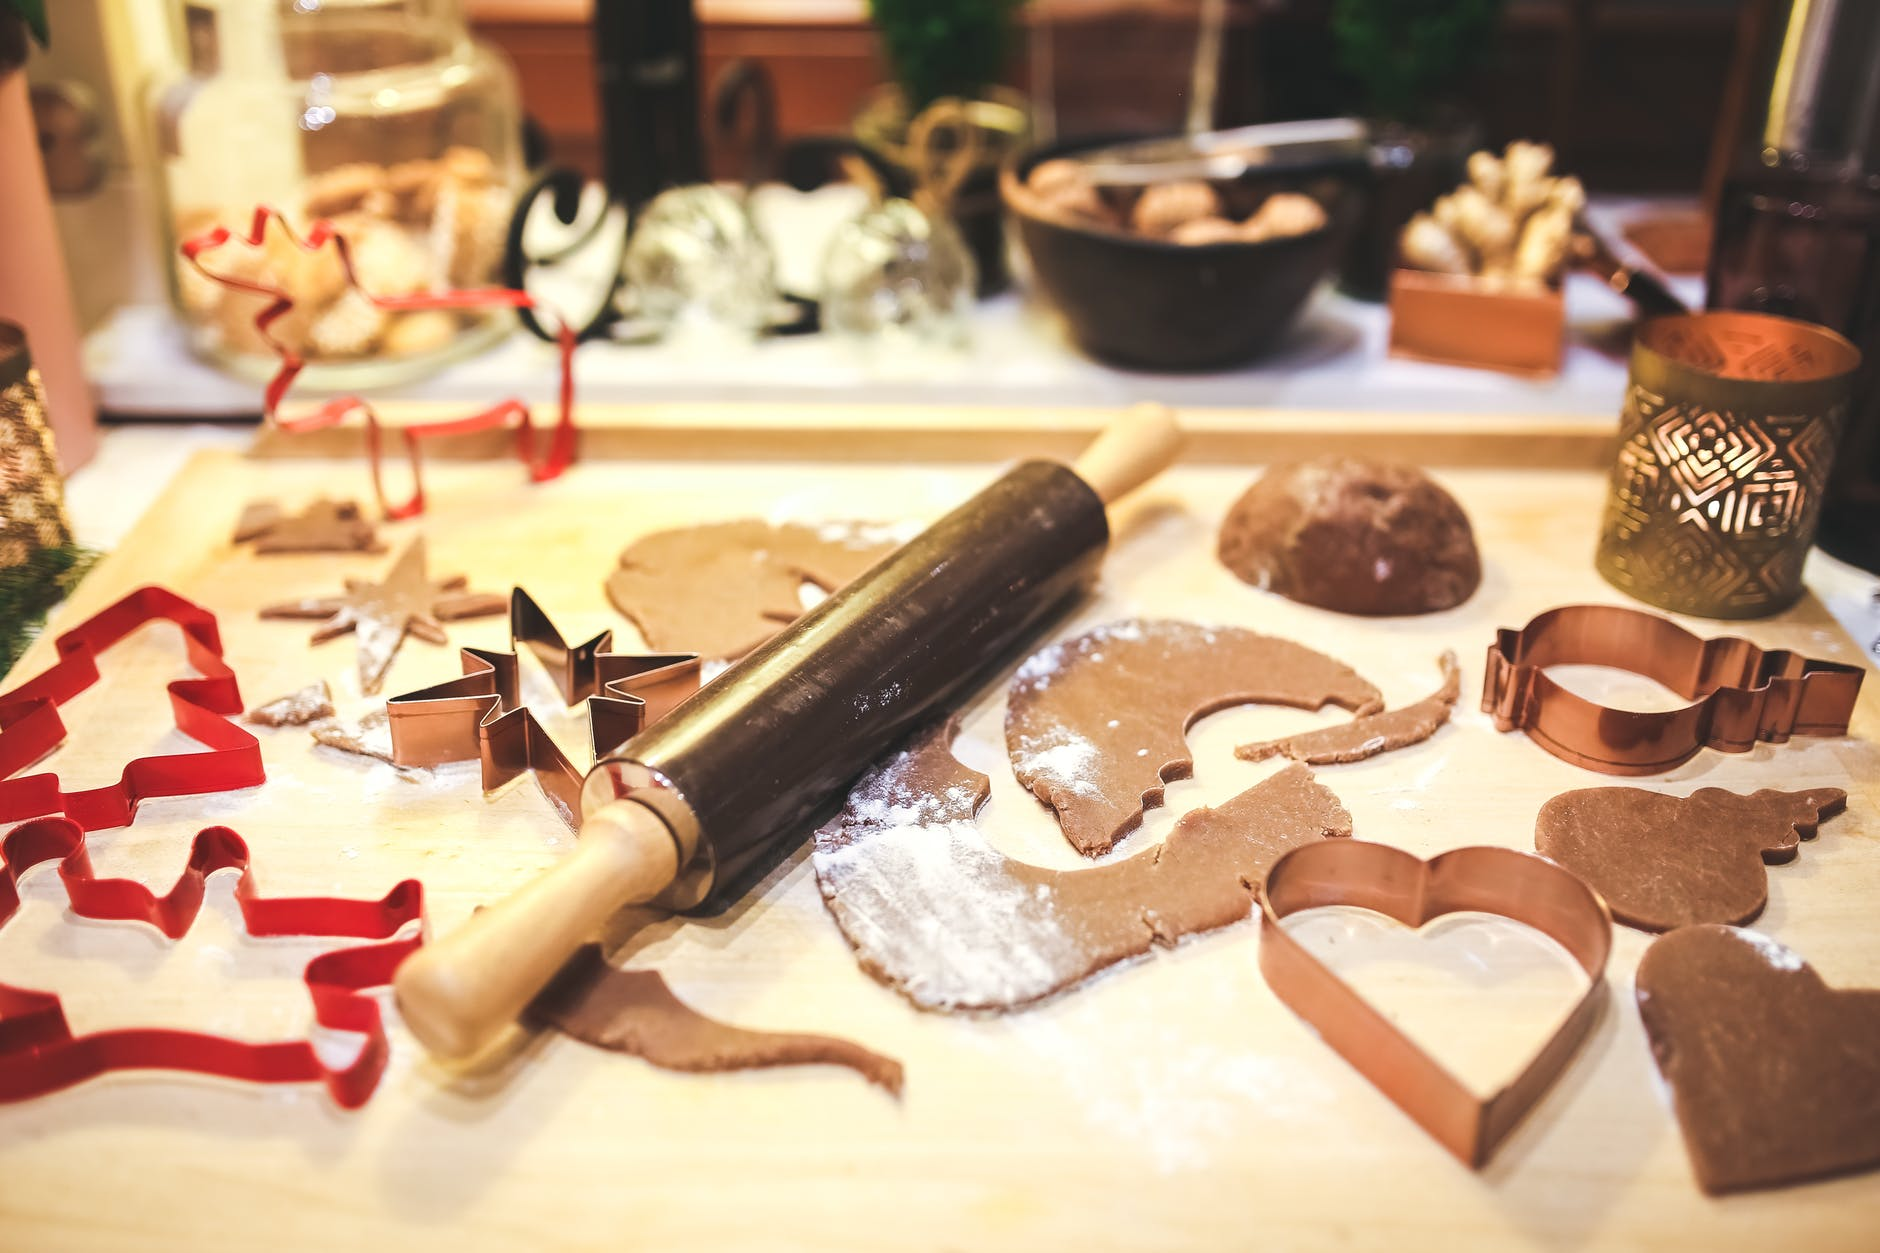 Bake homemade gingerbread together